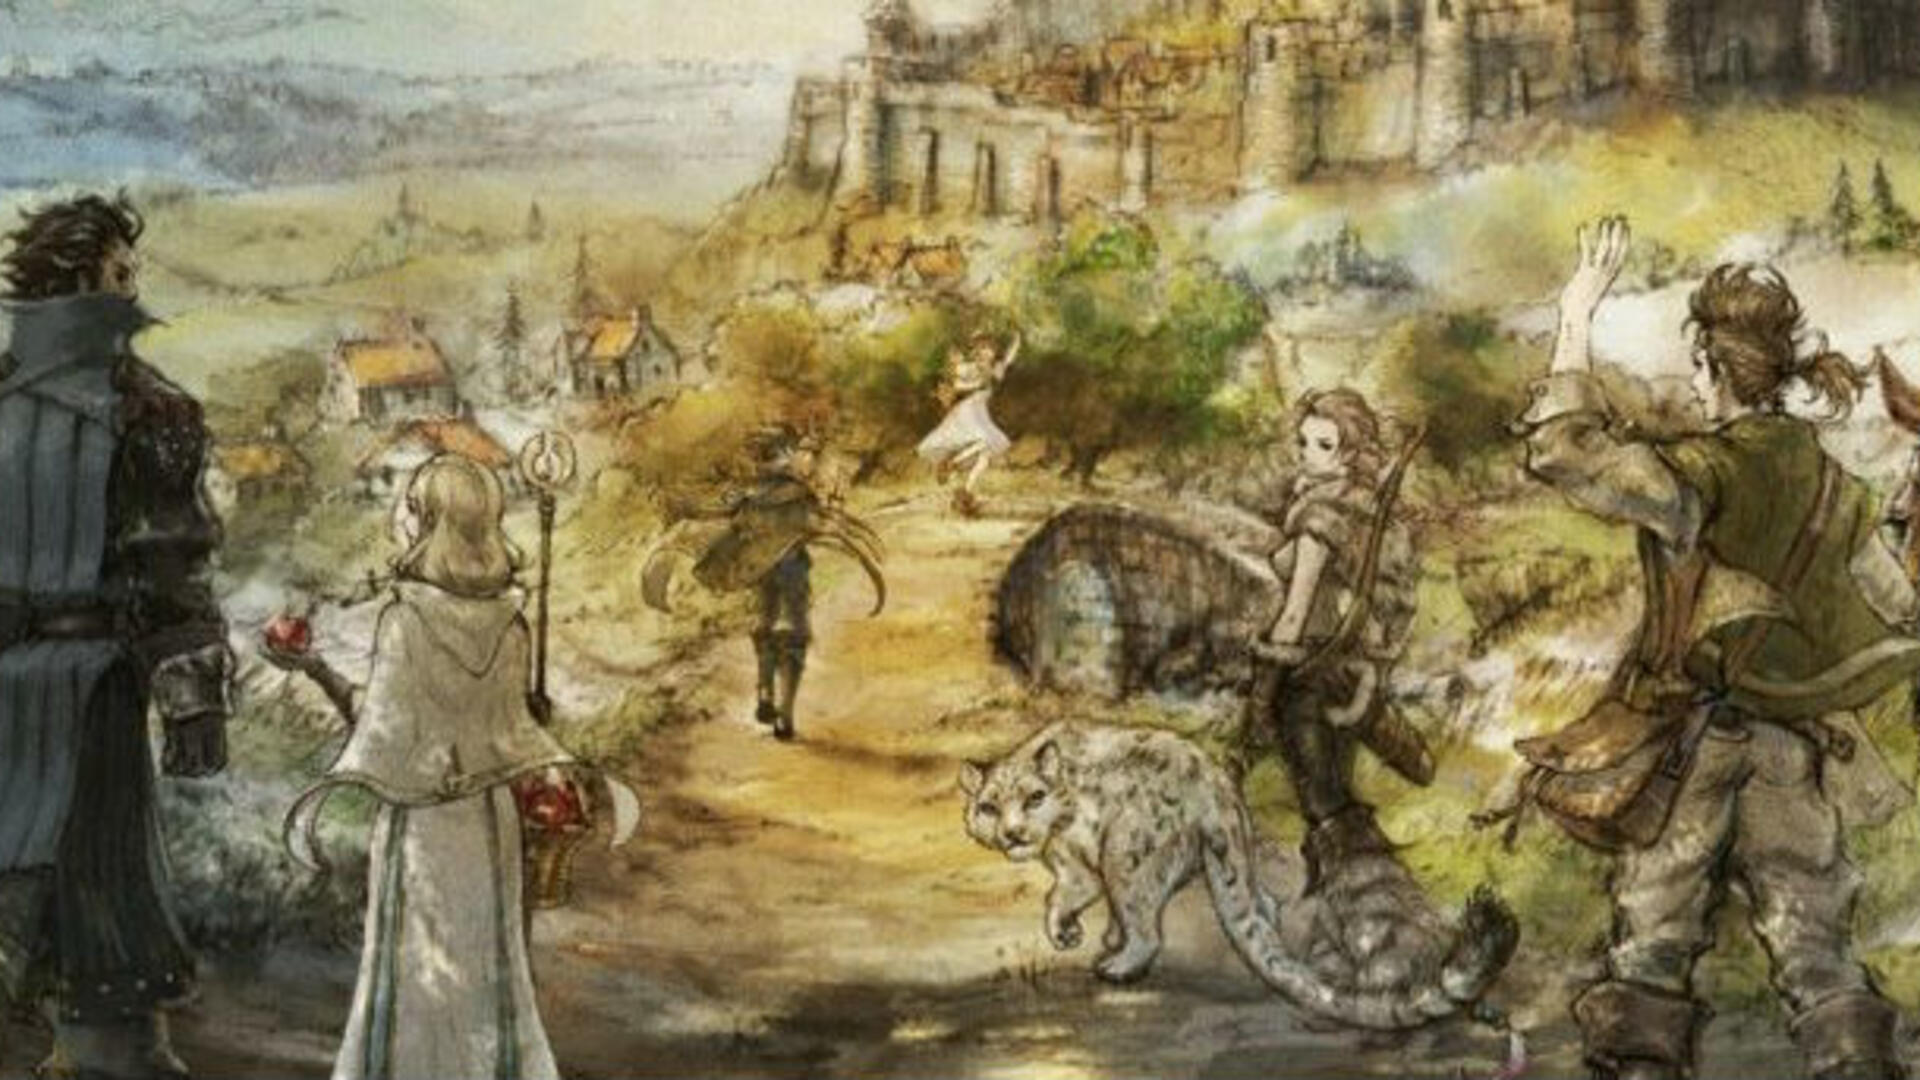 How Octopath Traveler Uses Unreal Engine 4 to Blend Old and New